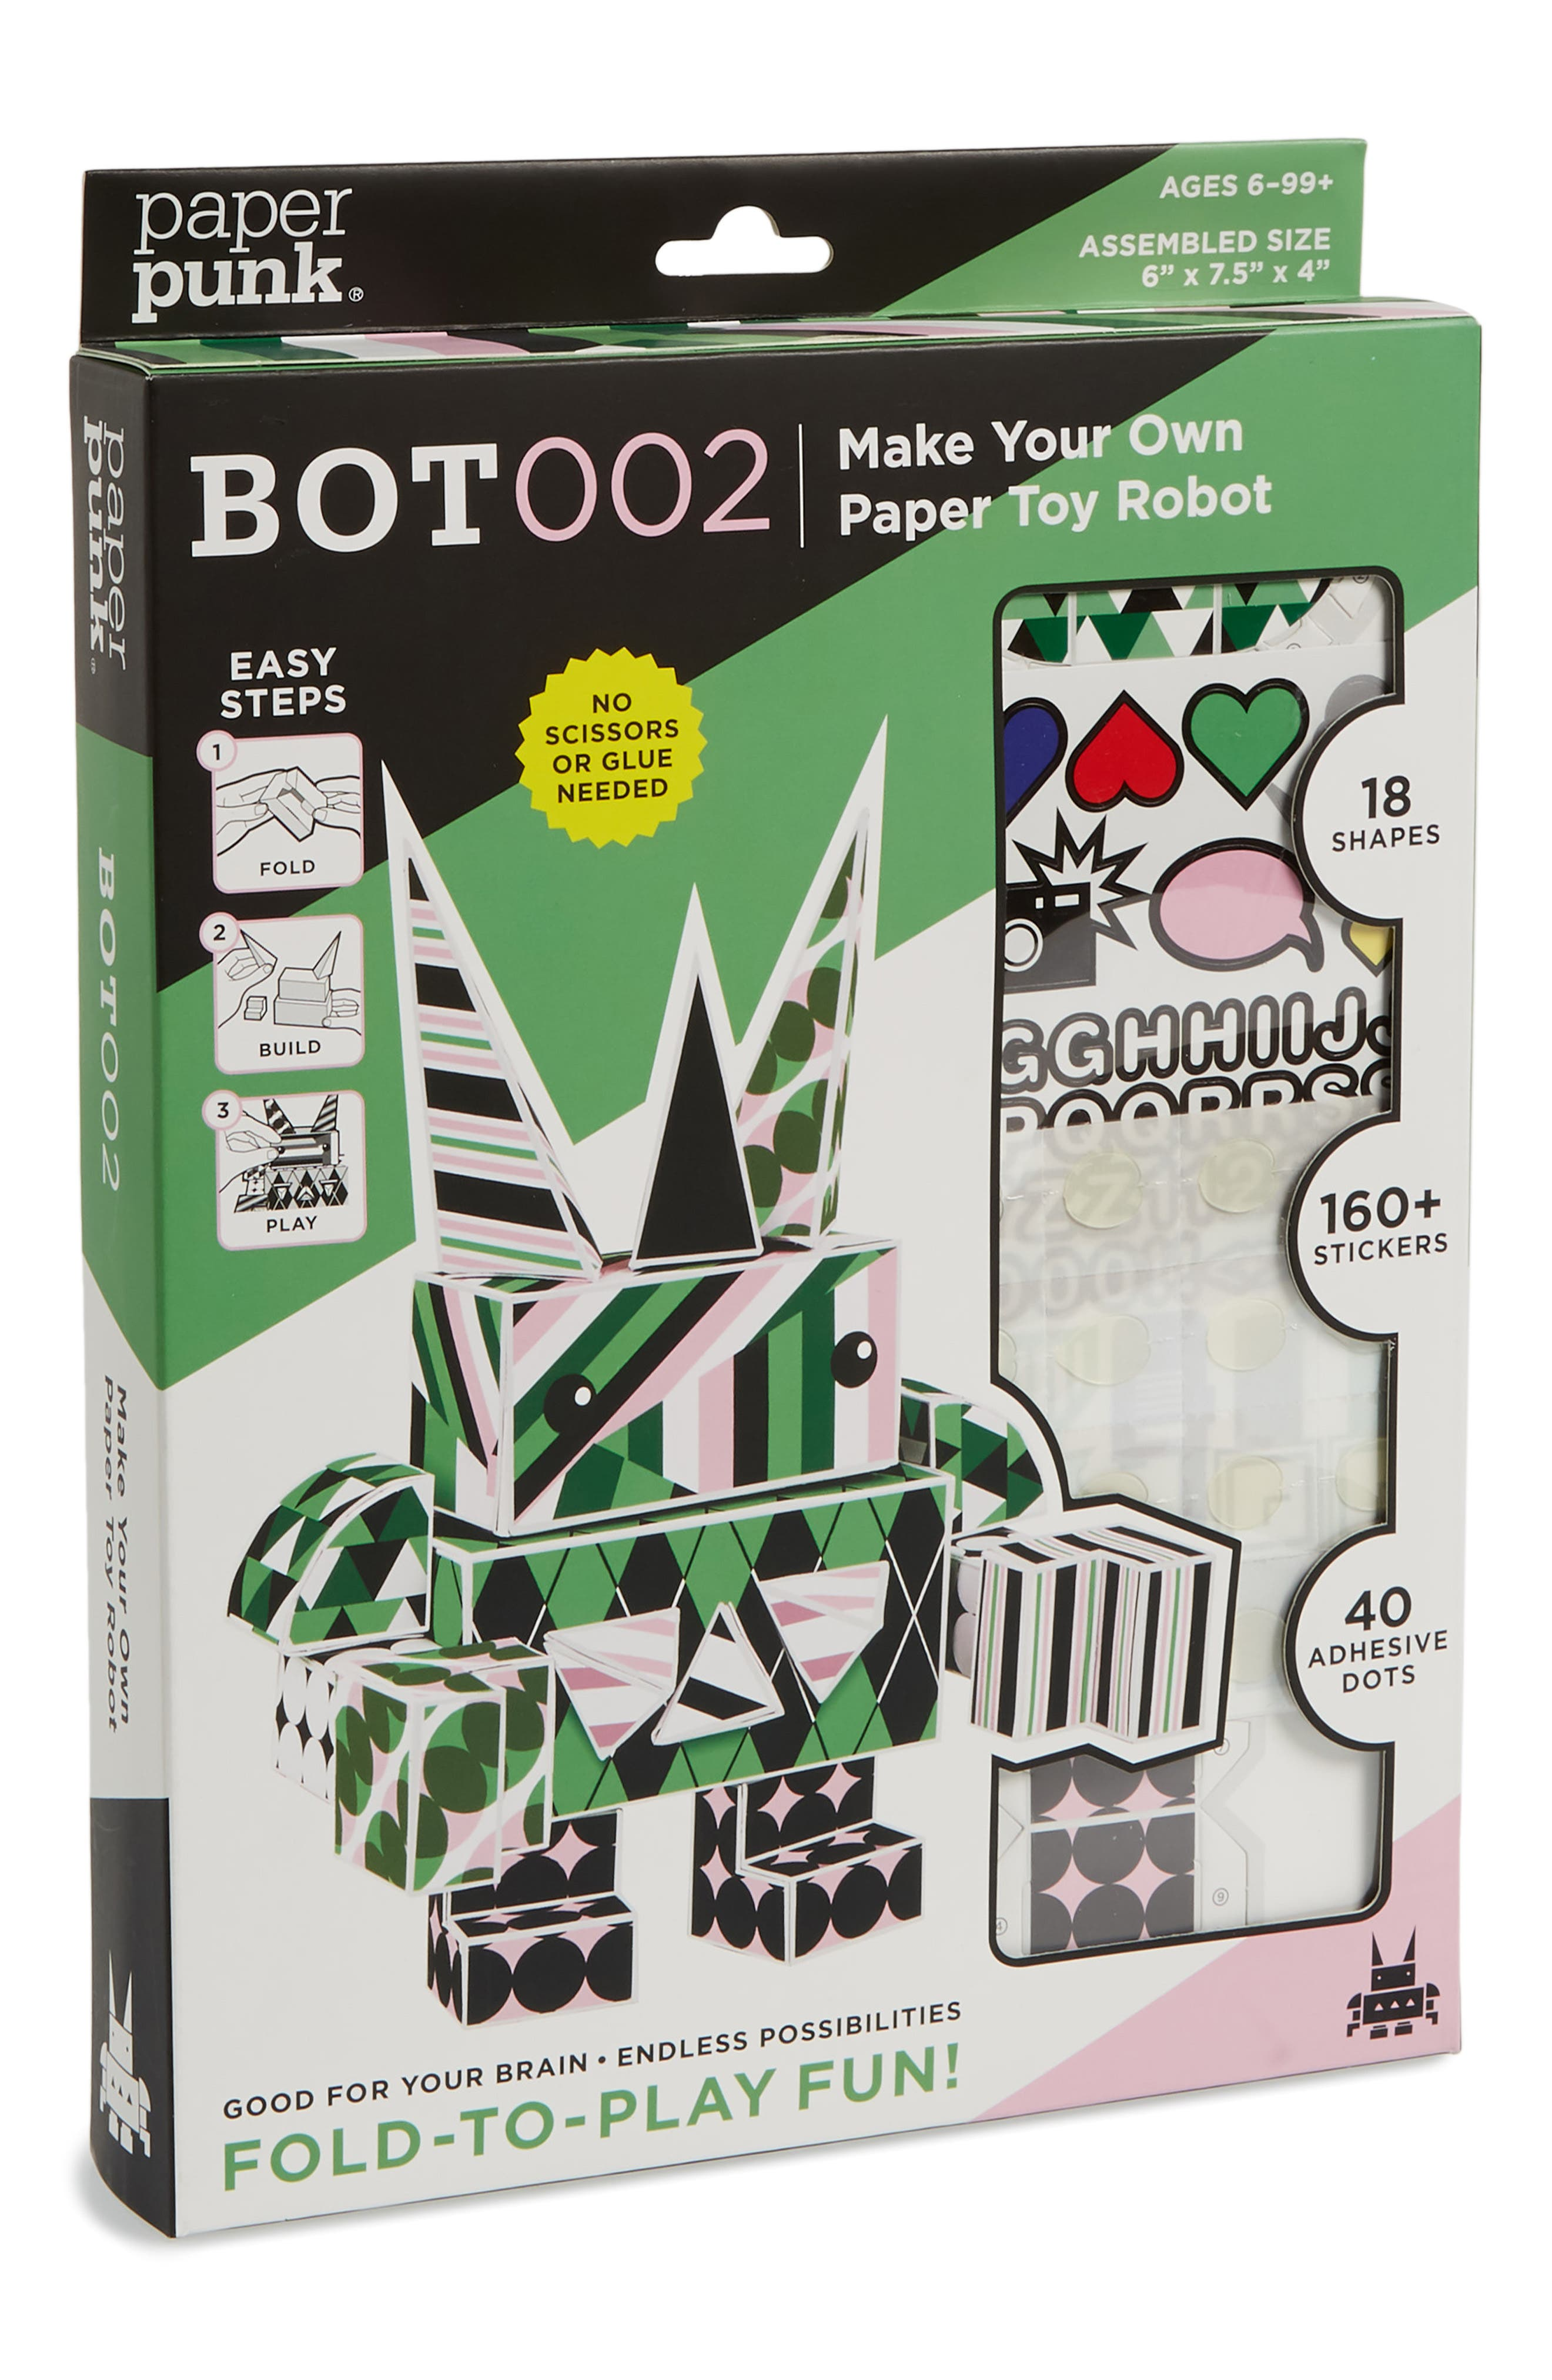 Bot002 Make Your Own Paper Toy Robot Kit,                         Main,                         color, Multi